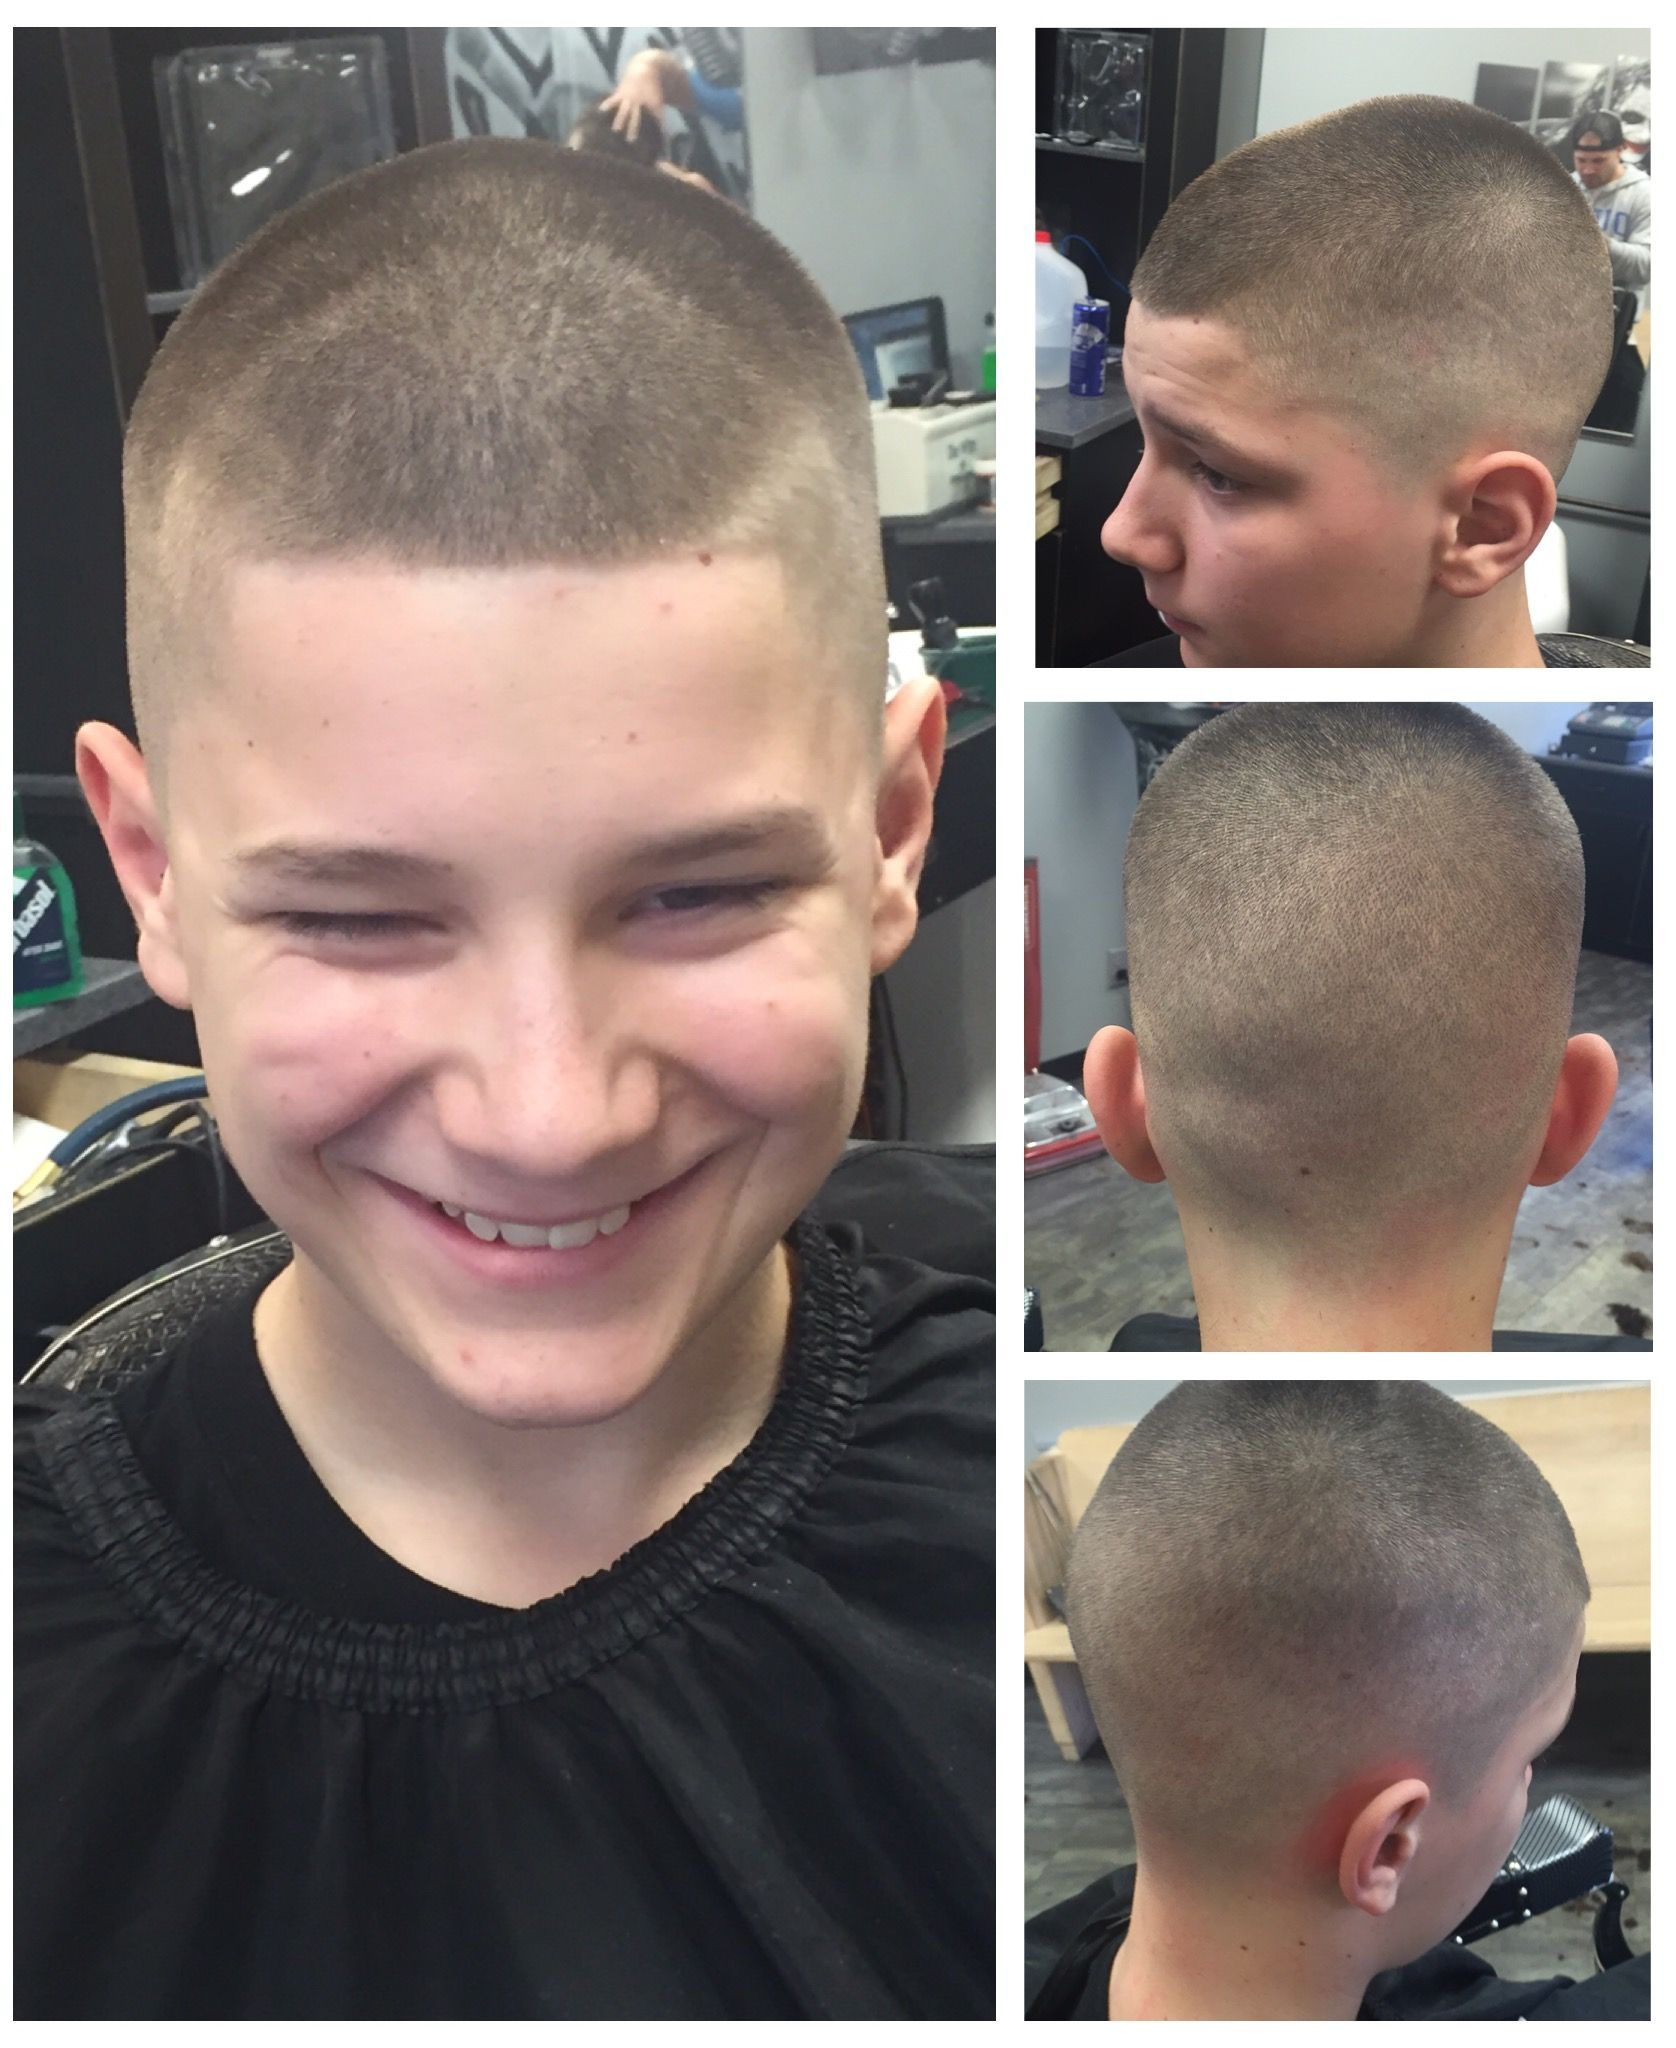 fade haircut i did at ellet barber shop in akron, ohio